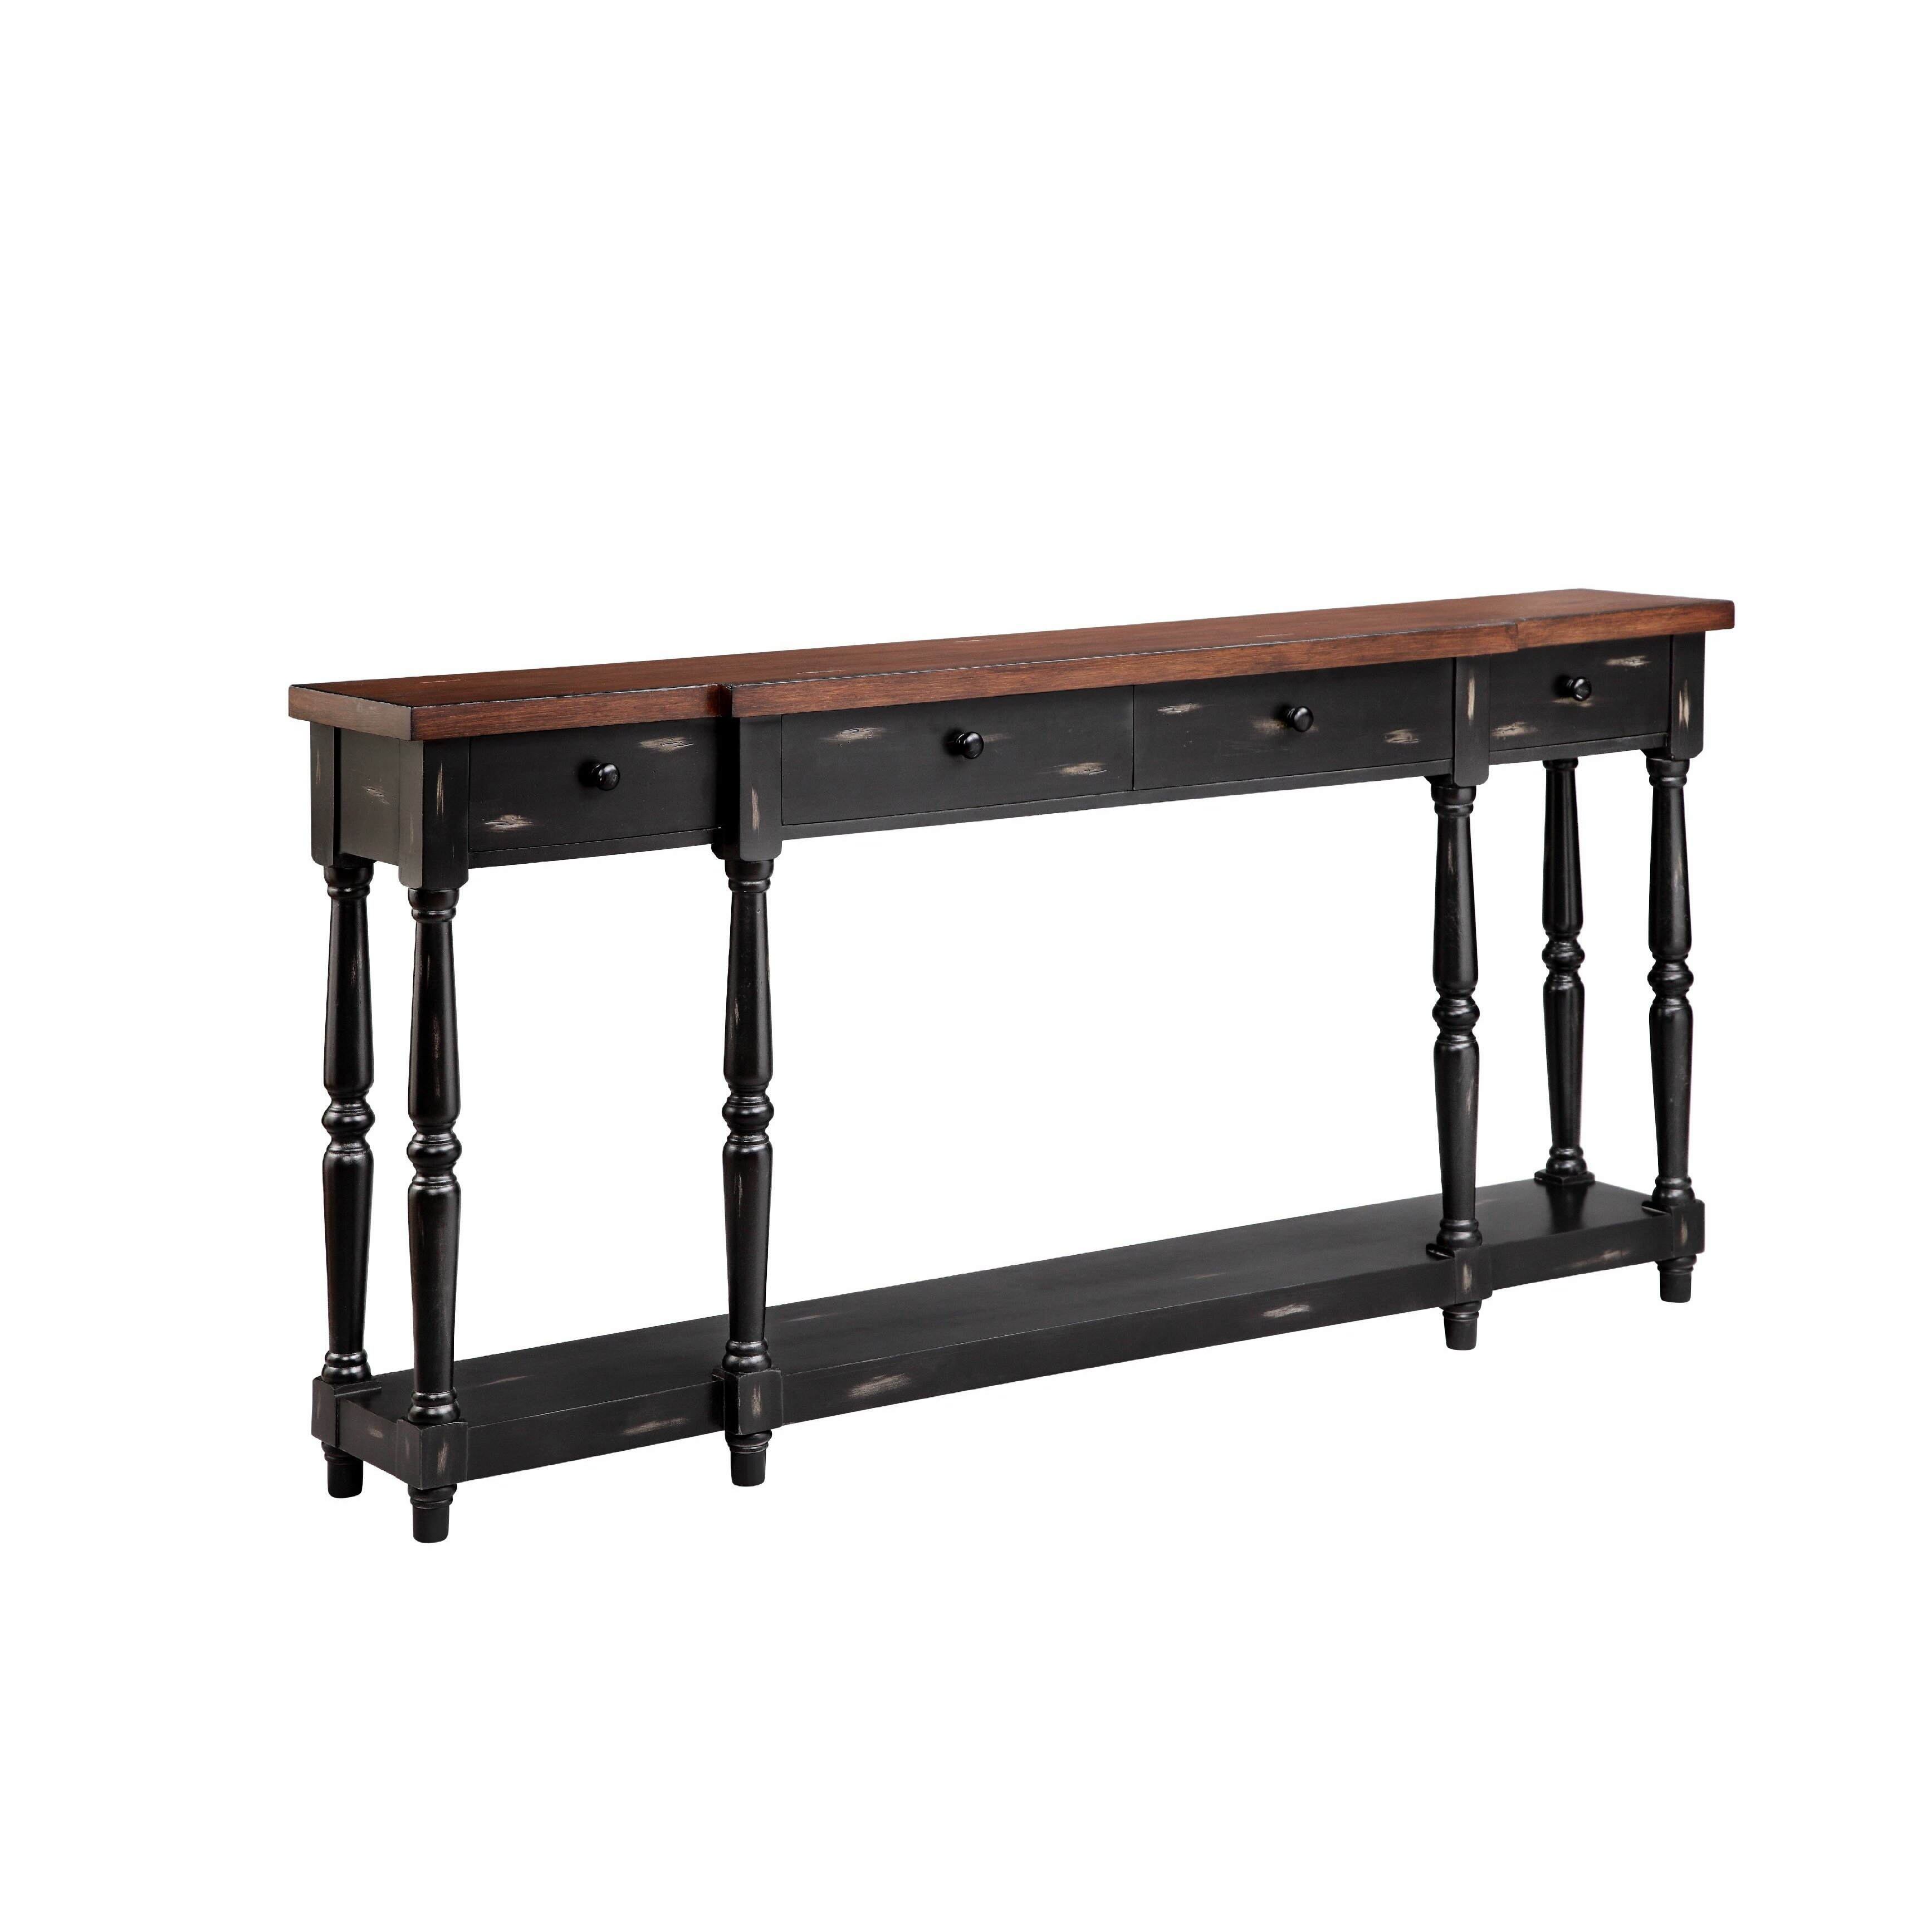 Stein world simpson console table reviews wayfair